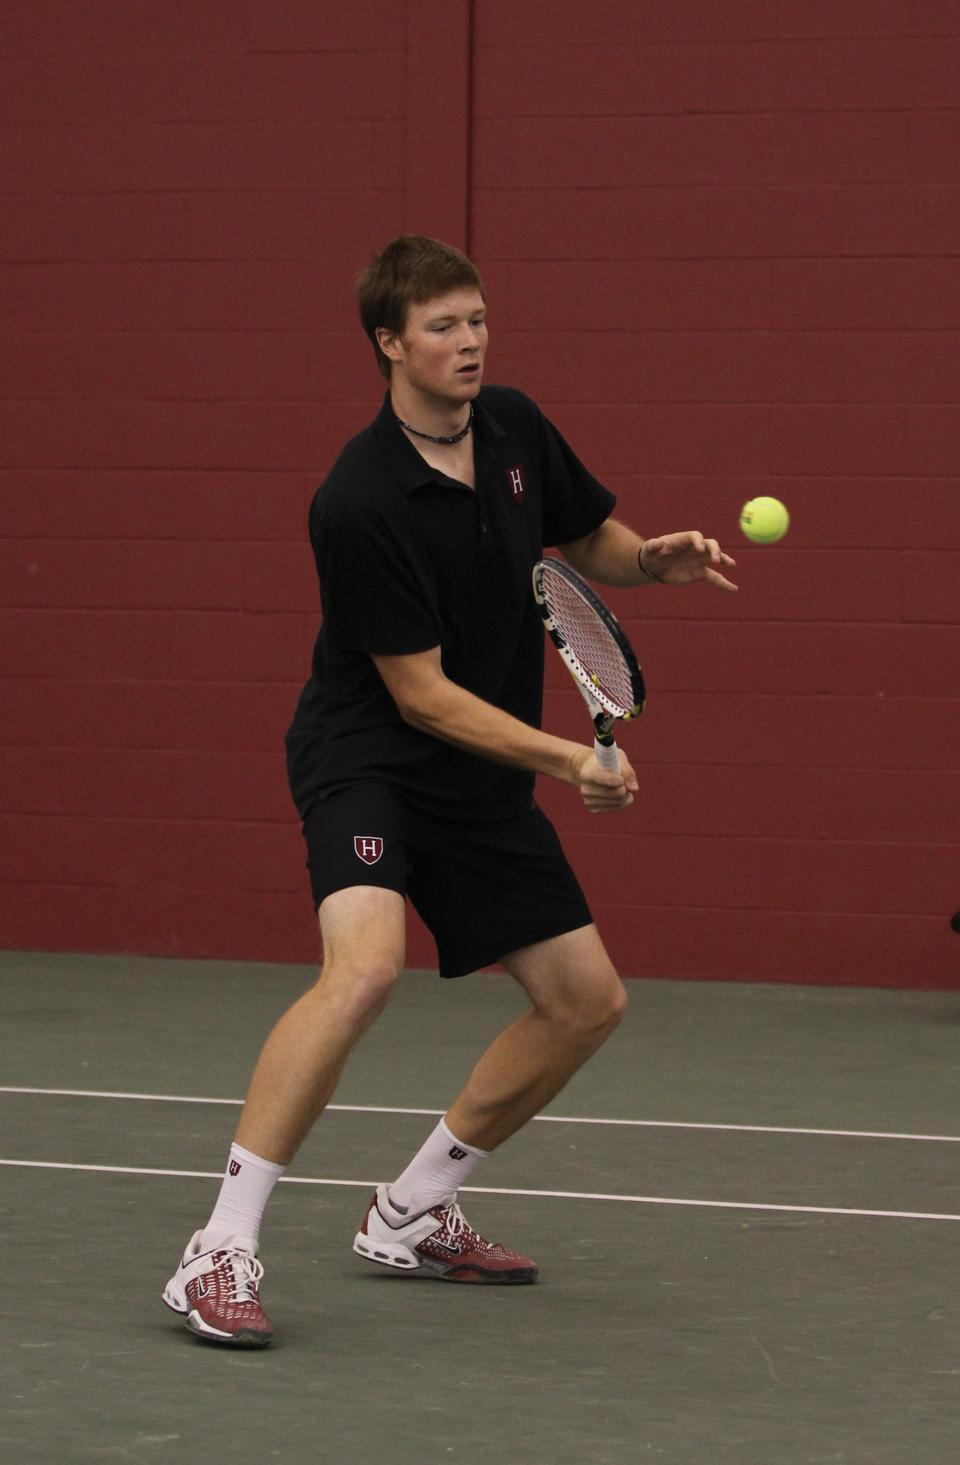 Shown here in earlier play, sophomore Casey MacMaster joined with freshman Denis Nguyen to make up the top seeded doubles team during this weekend's Halloween Invitational, but the two fell in a walkover to Crimson rookies Henry Steer and Alex Steinroeder—who also won the Flight A singles.